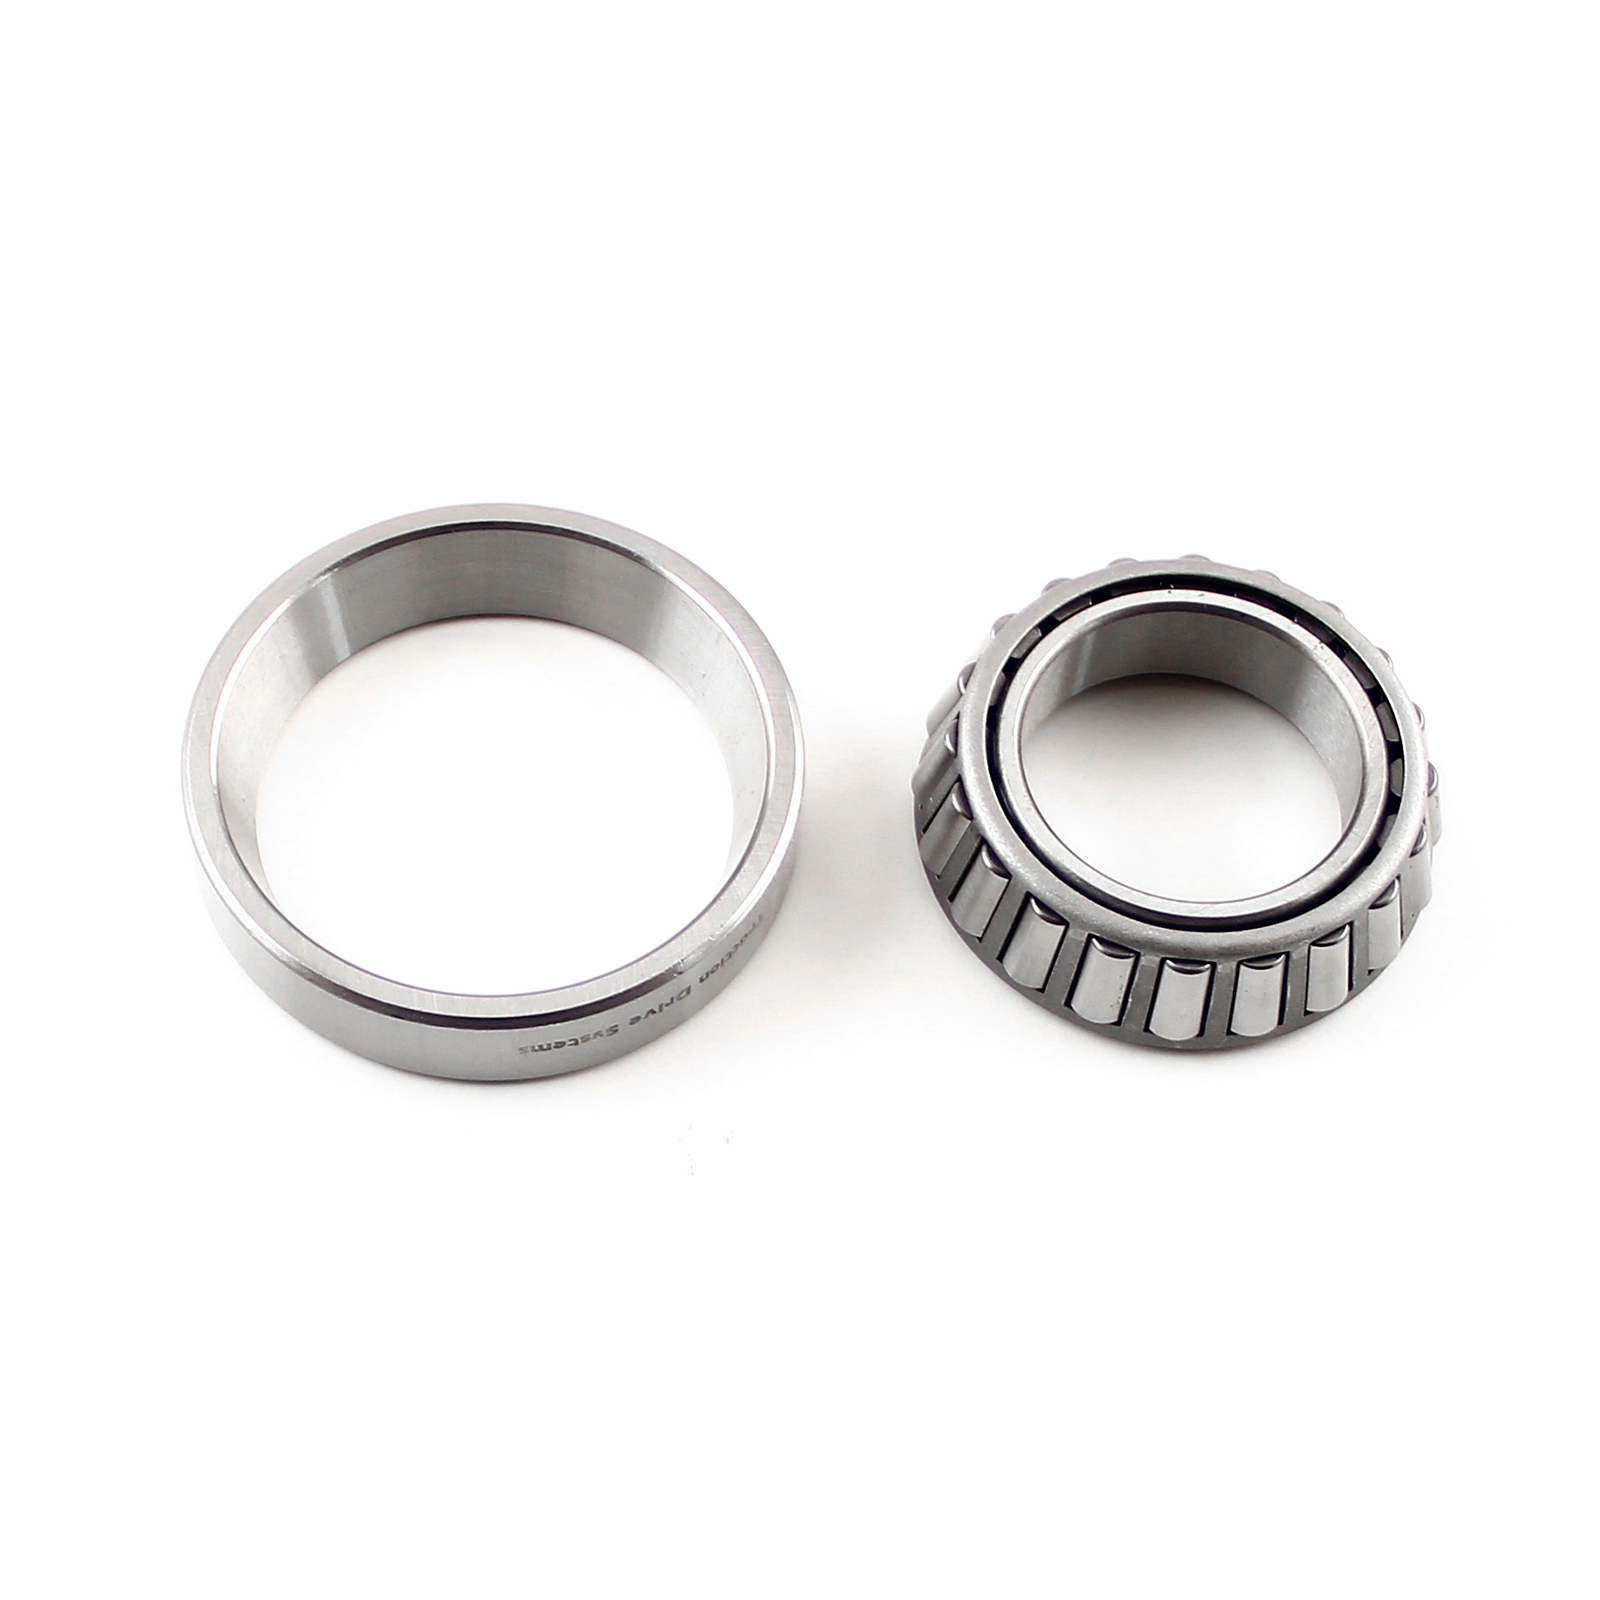 3.25 Carrier Bearing Lm603049